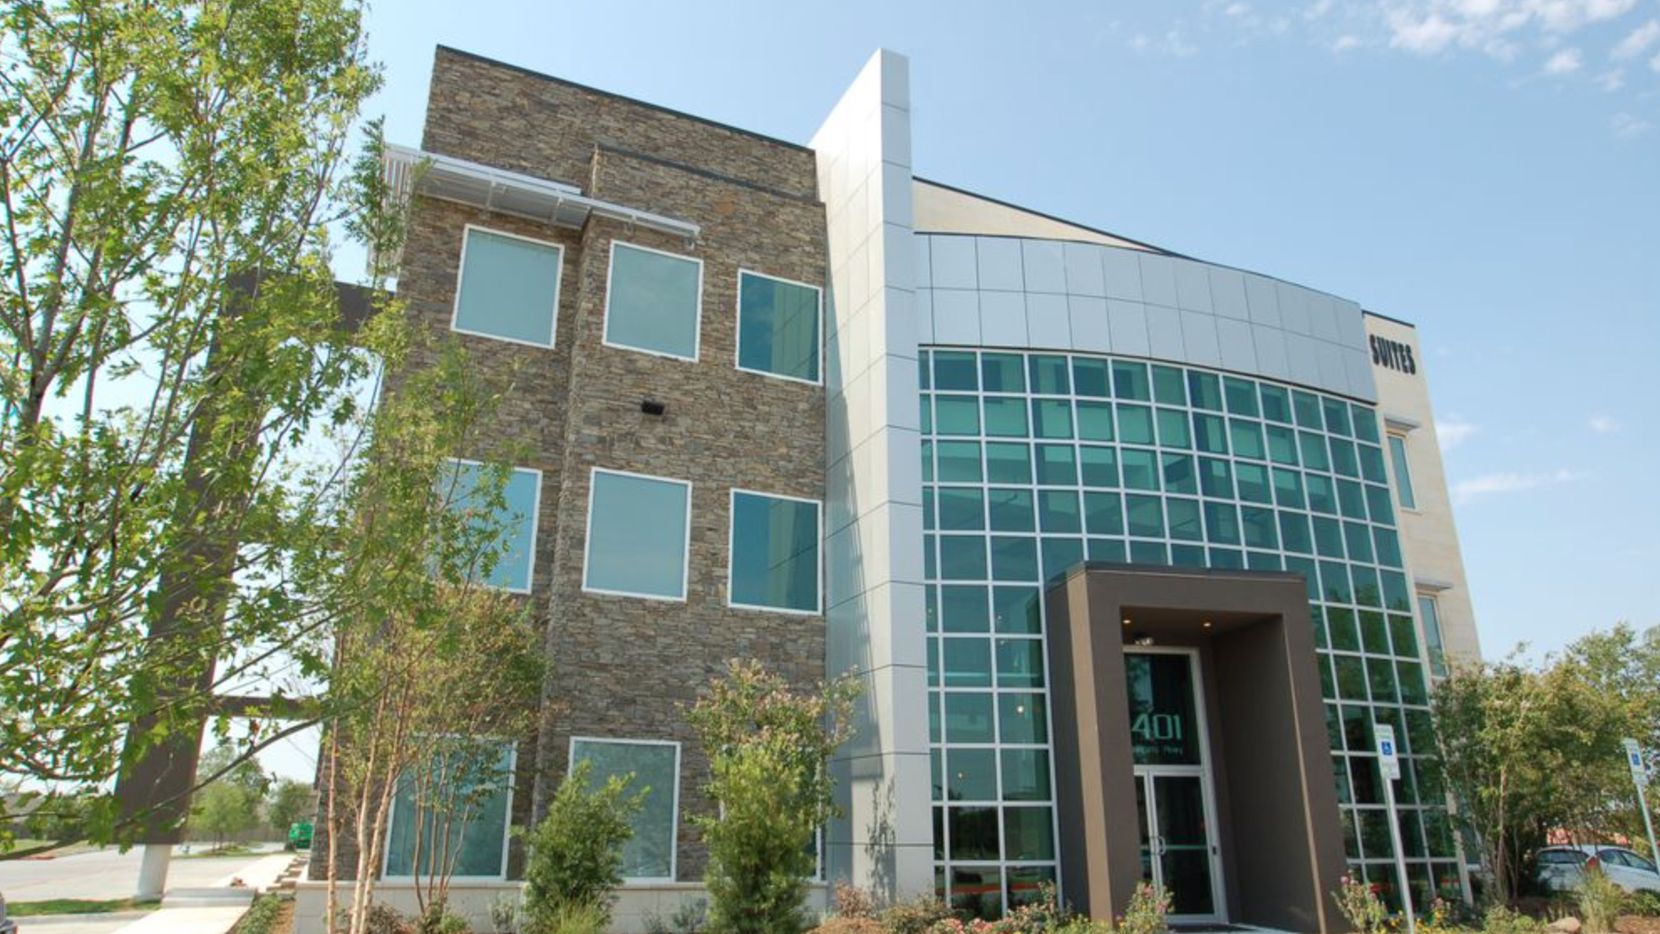 ContraForce has leased offices in the Yeager Building near Craig Ranch.